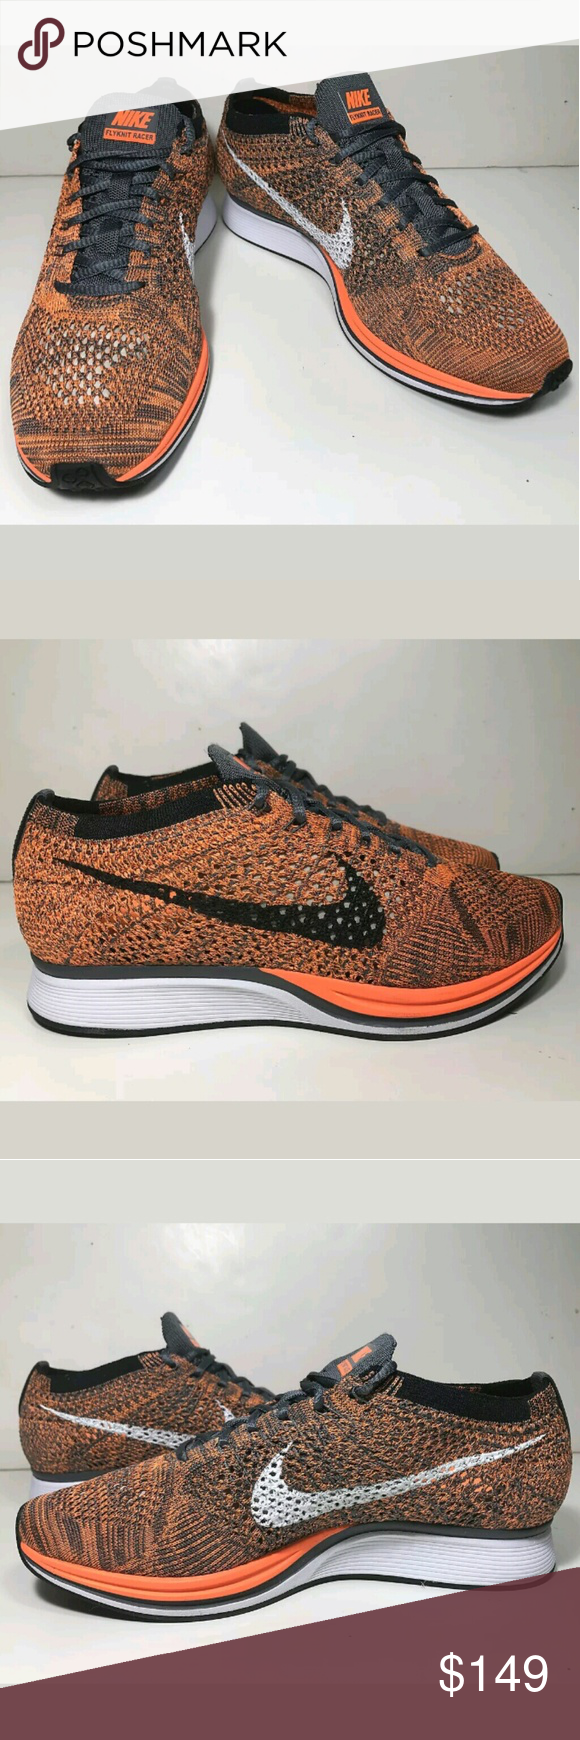 ba600678e892 Brand New Nike Flyknit Racer Cheetos Edition Brand new 100% authentic. Size  men s 6.5 equivalent to women s 8. Comes with box but no lid.